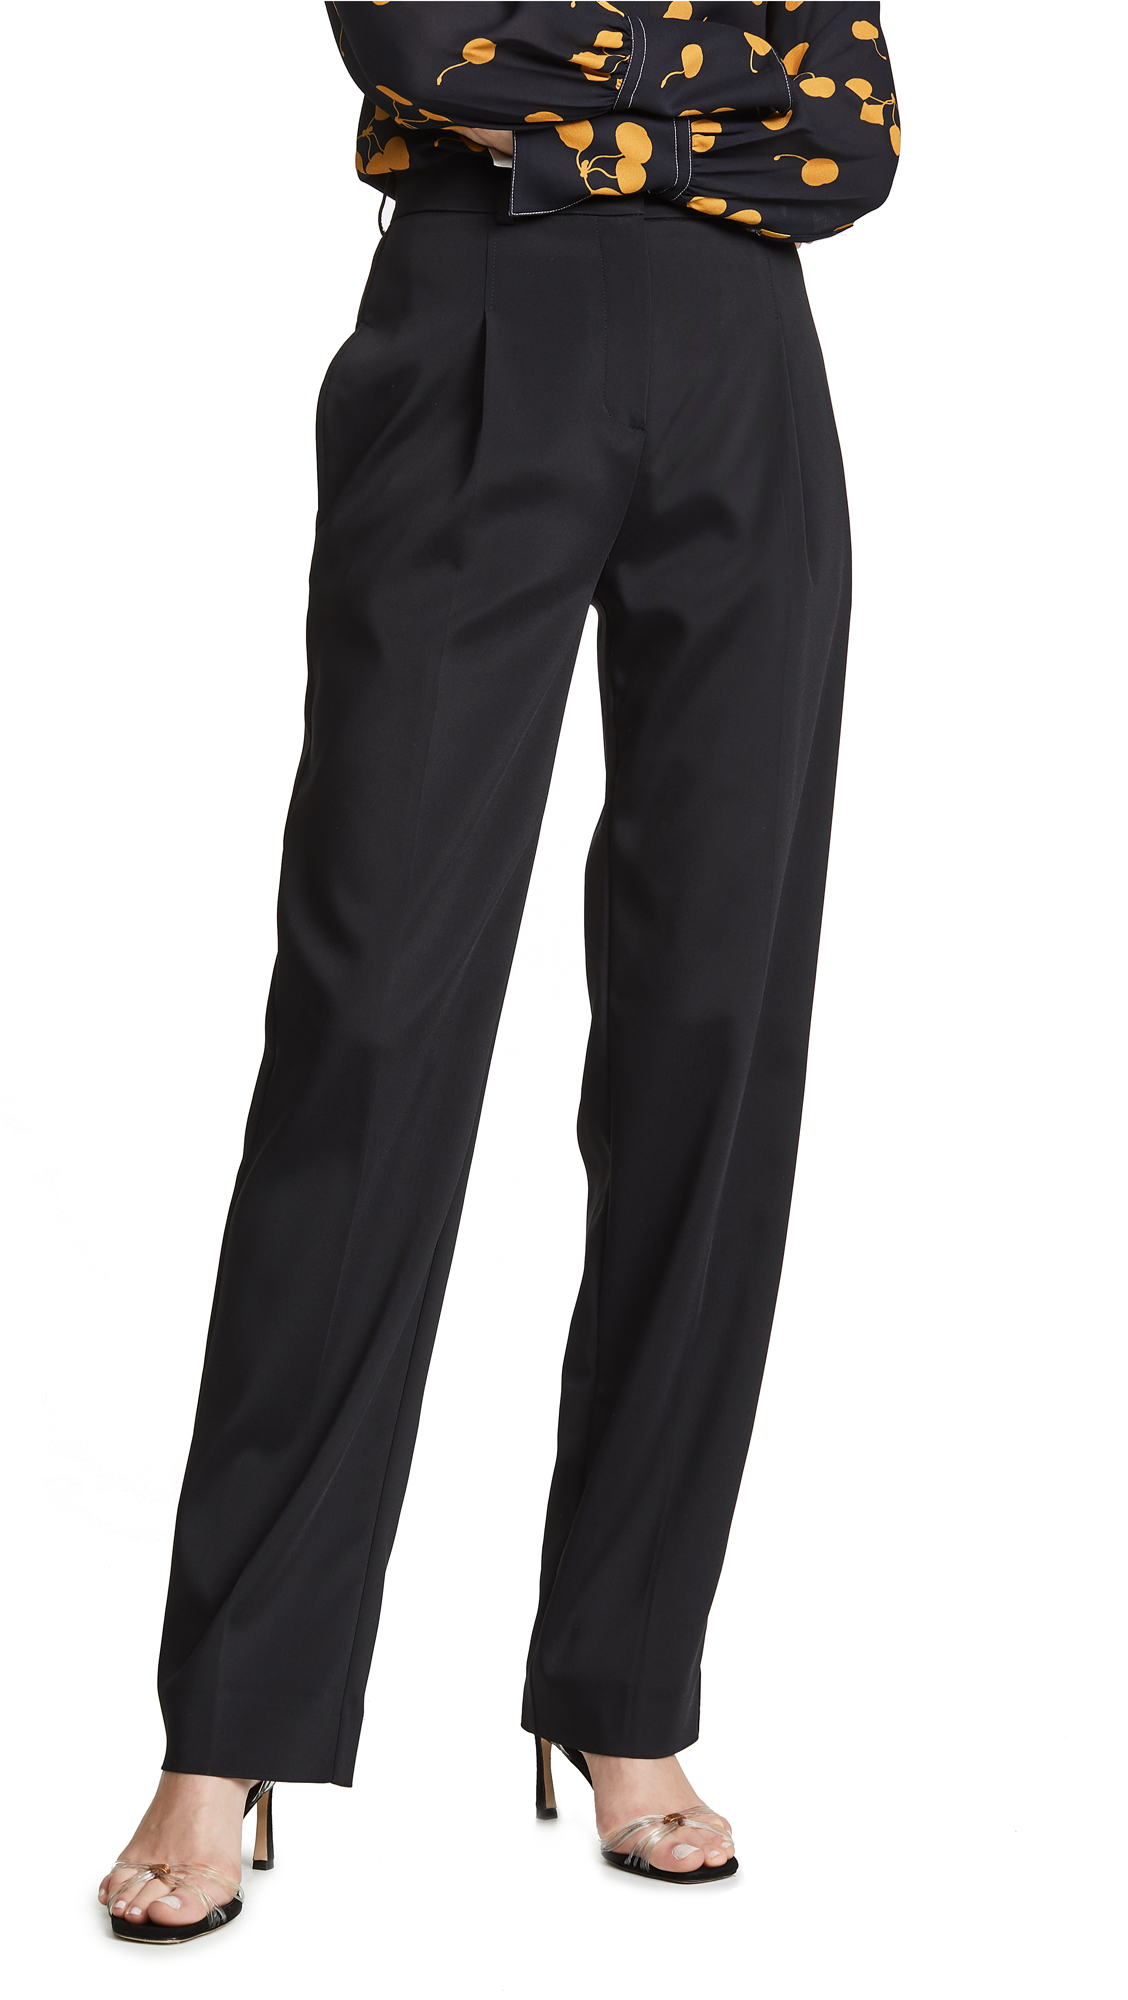 Esteban Cortazar Tapered Trousers